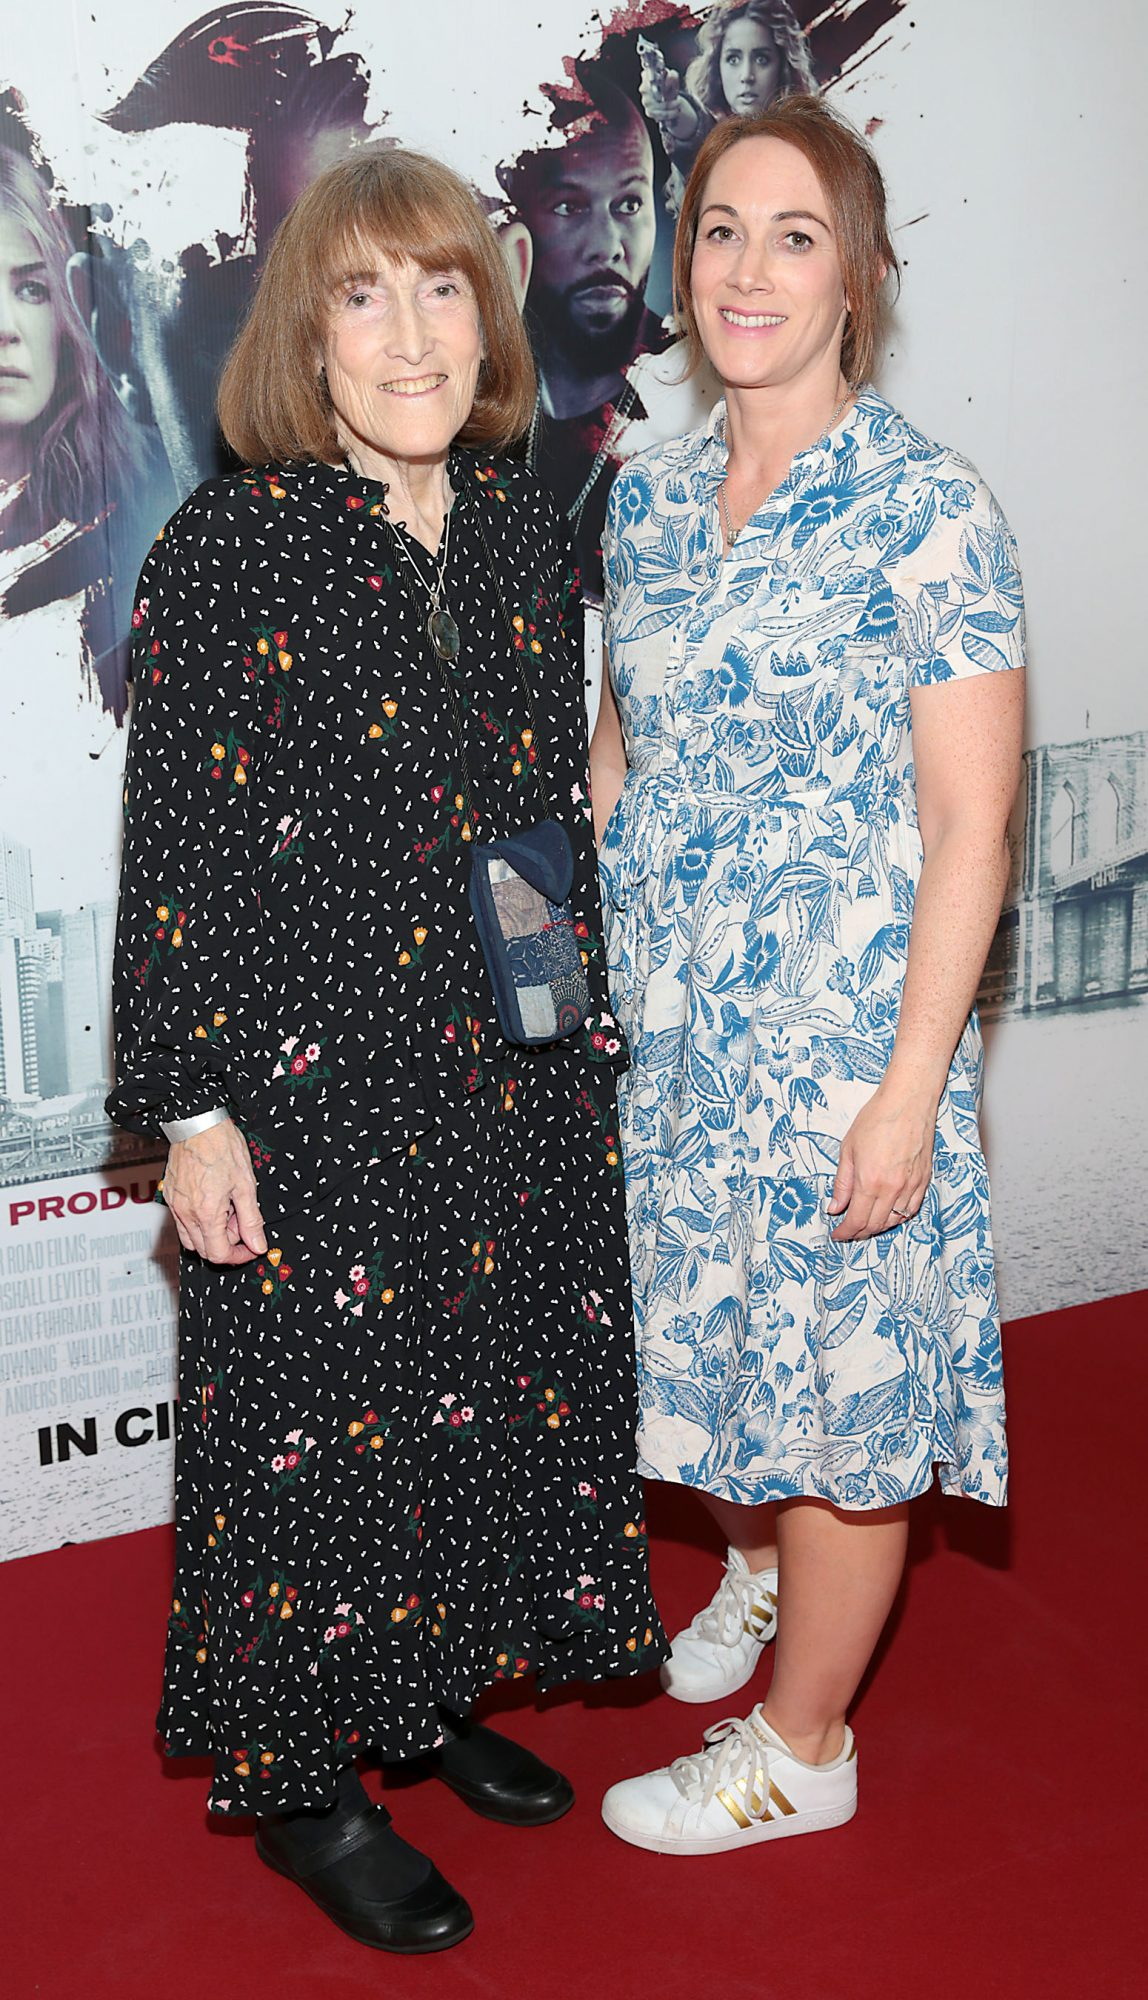 Brenna Katz Clarke and Rachel Clarke at the special preview screening of The Informer at the Lighthouse Cinema Dublin. Pic: Brian McEvoy